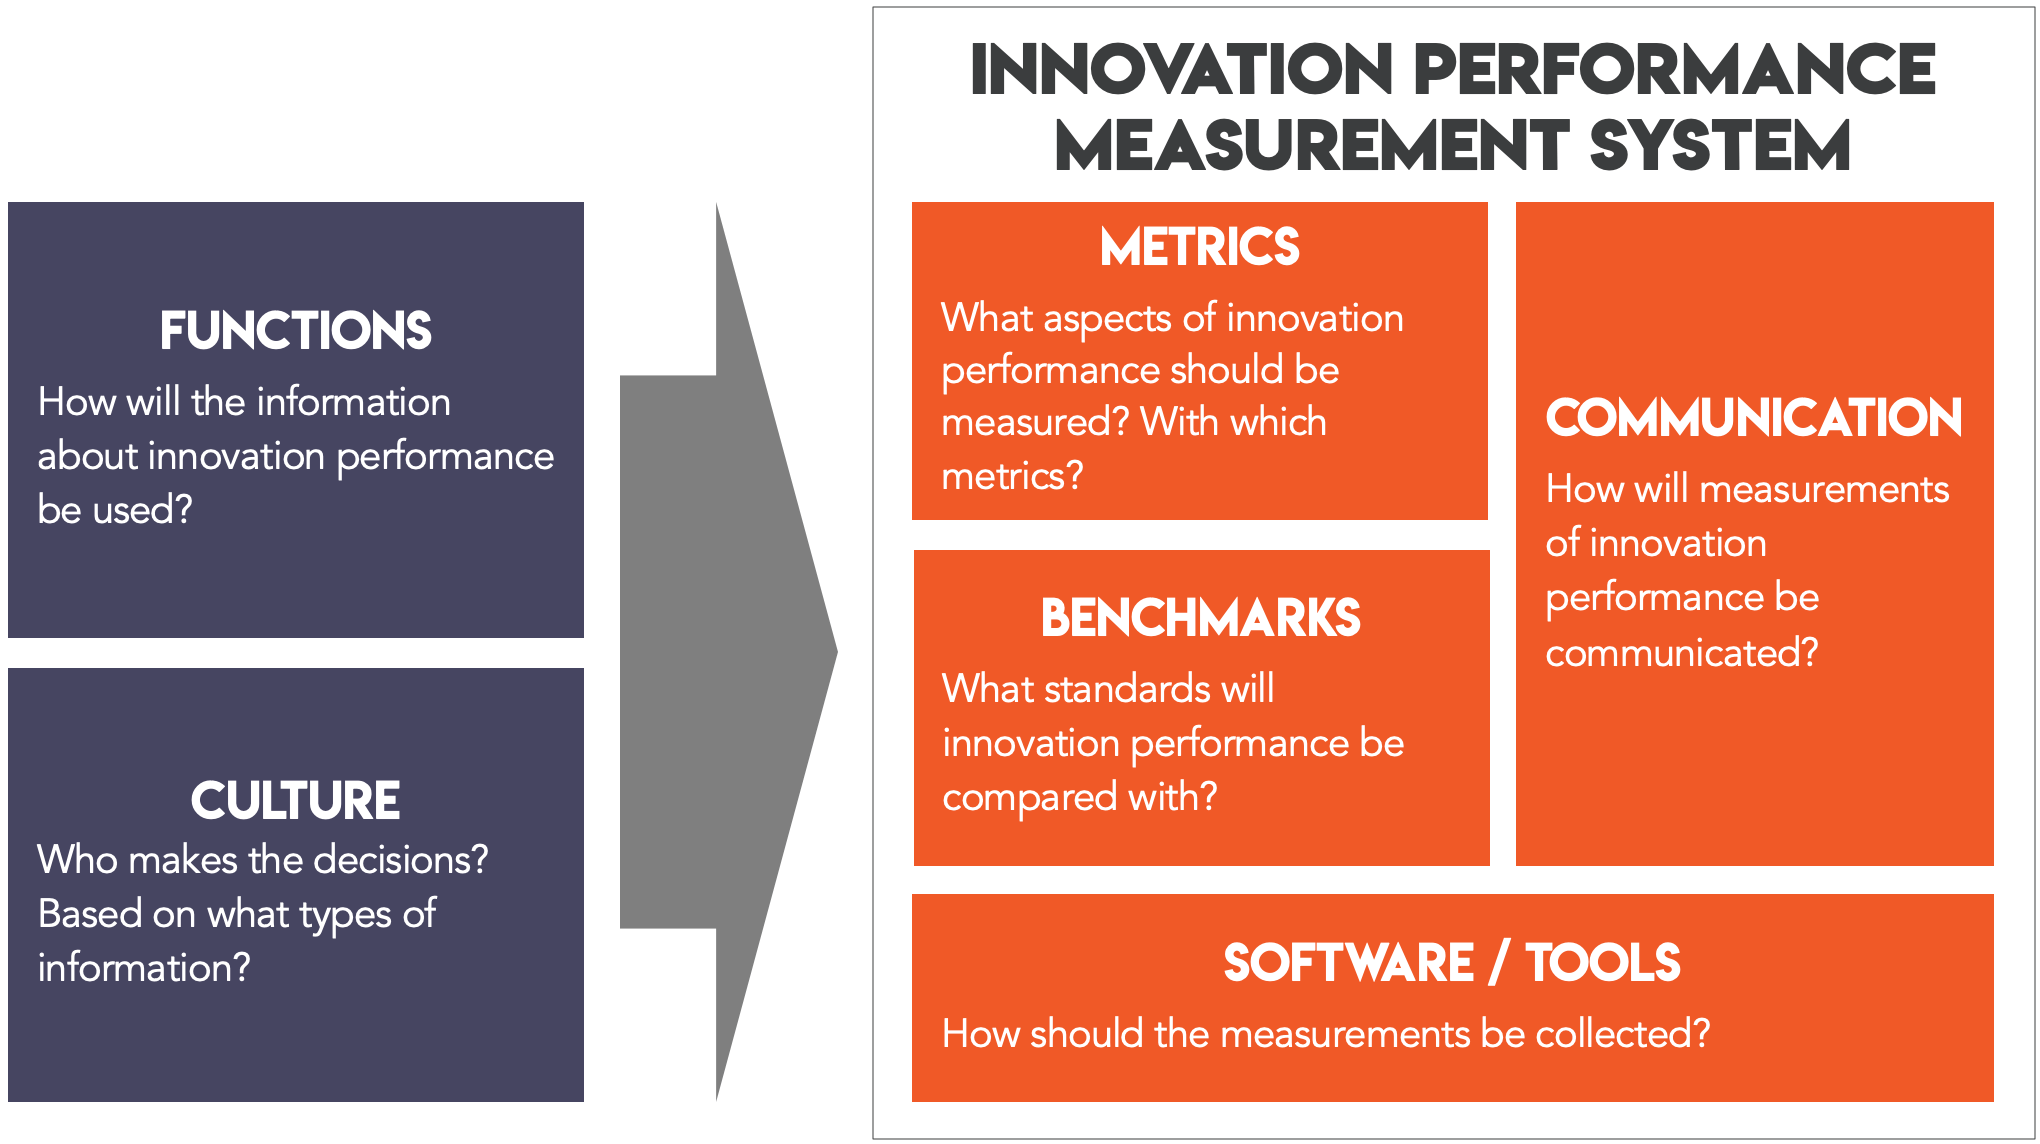 Measuring innovation performance requires a system